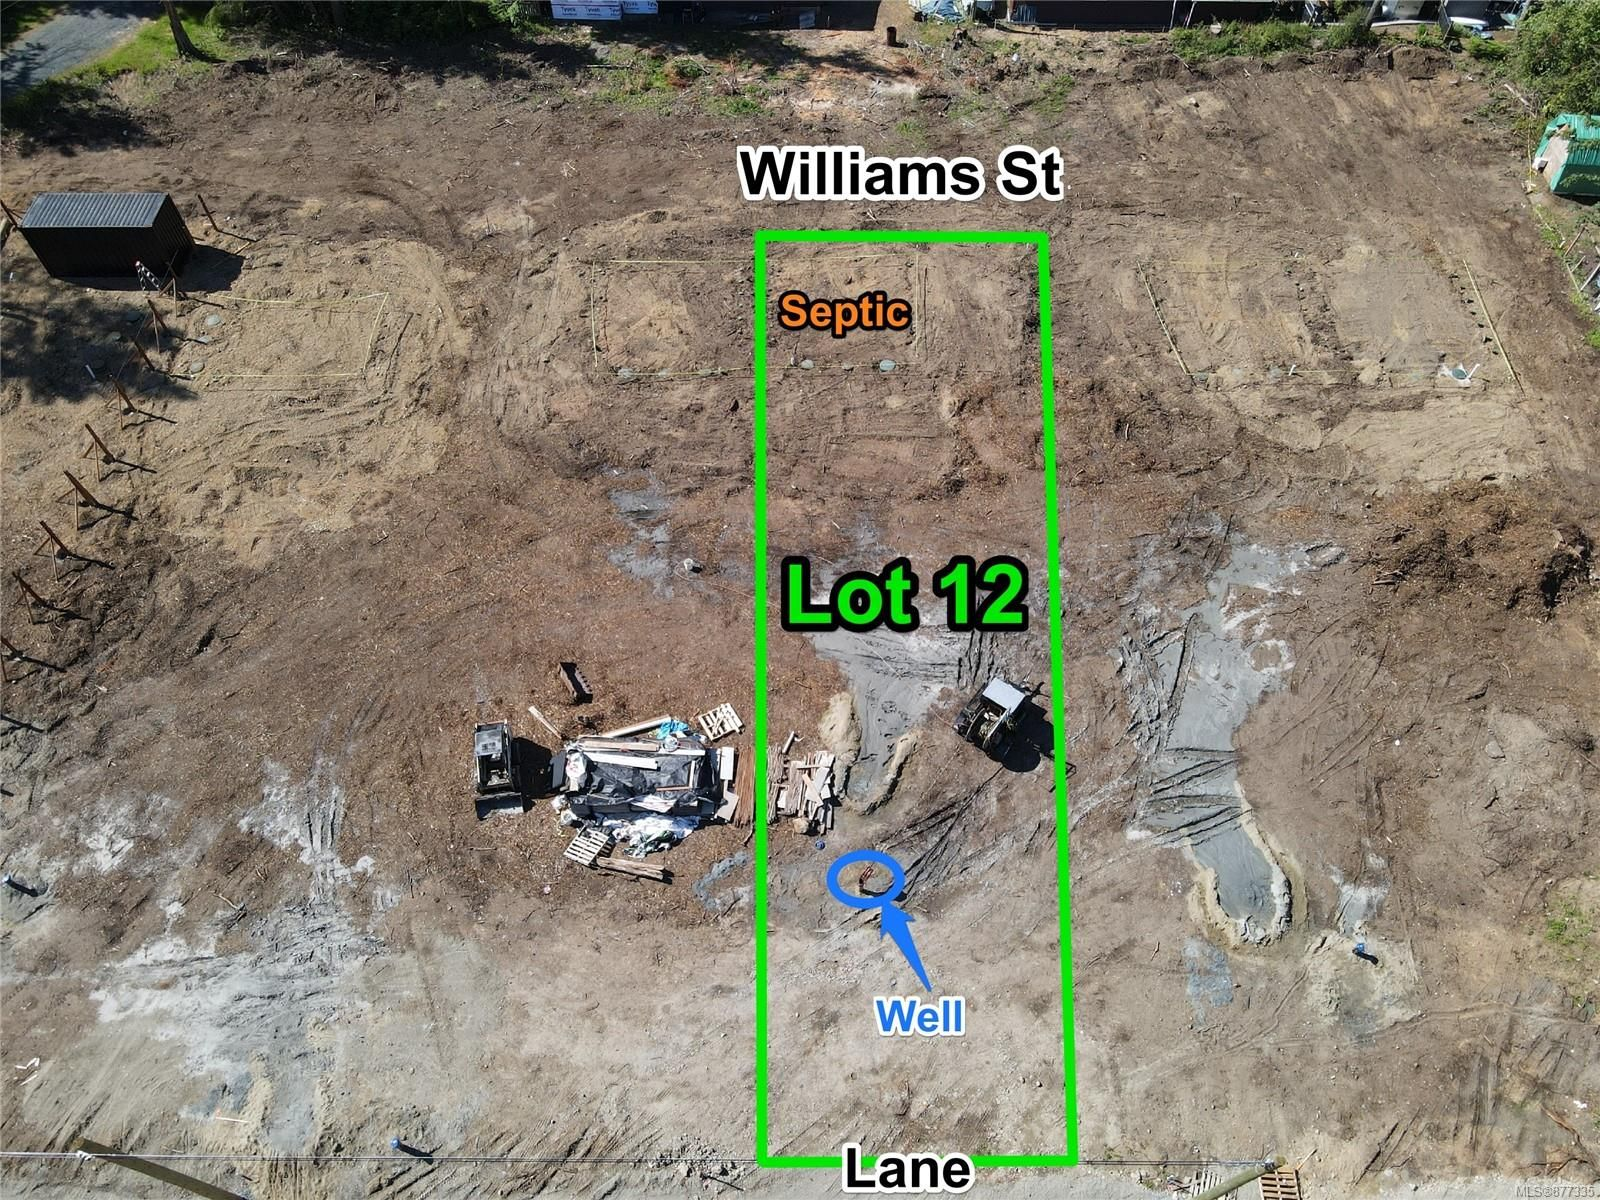 Main Photo: Lot 12 Williams St in : PQ Errington/Coombs/Hilliers Land for sale (Parksville/Qualicum)  : MLS®# 877335